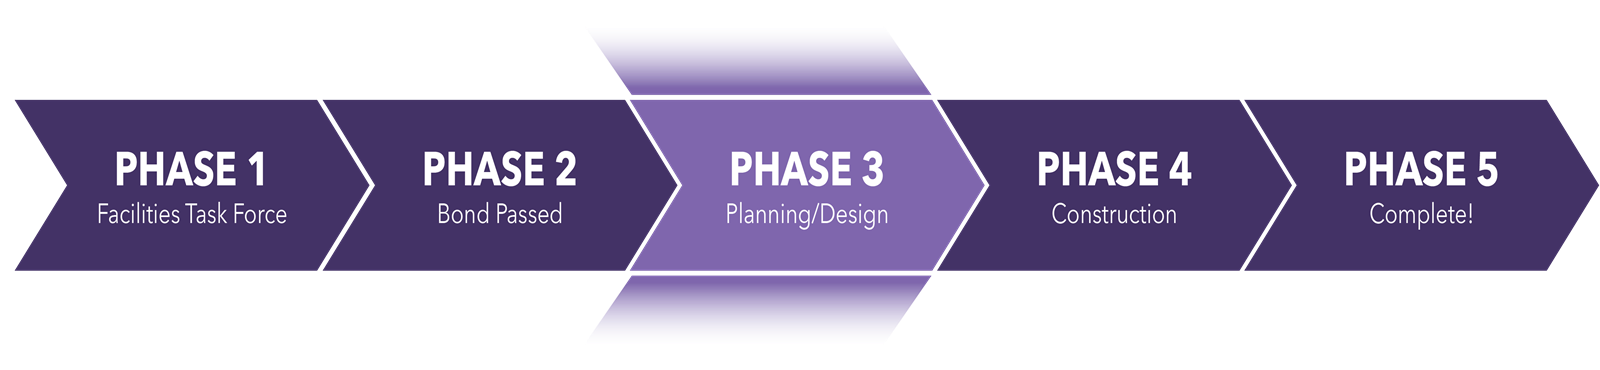 Phase 3: Planning and Design